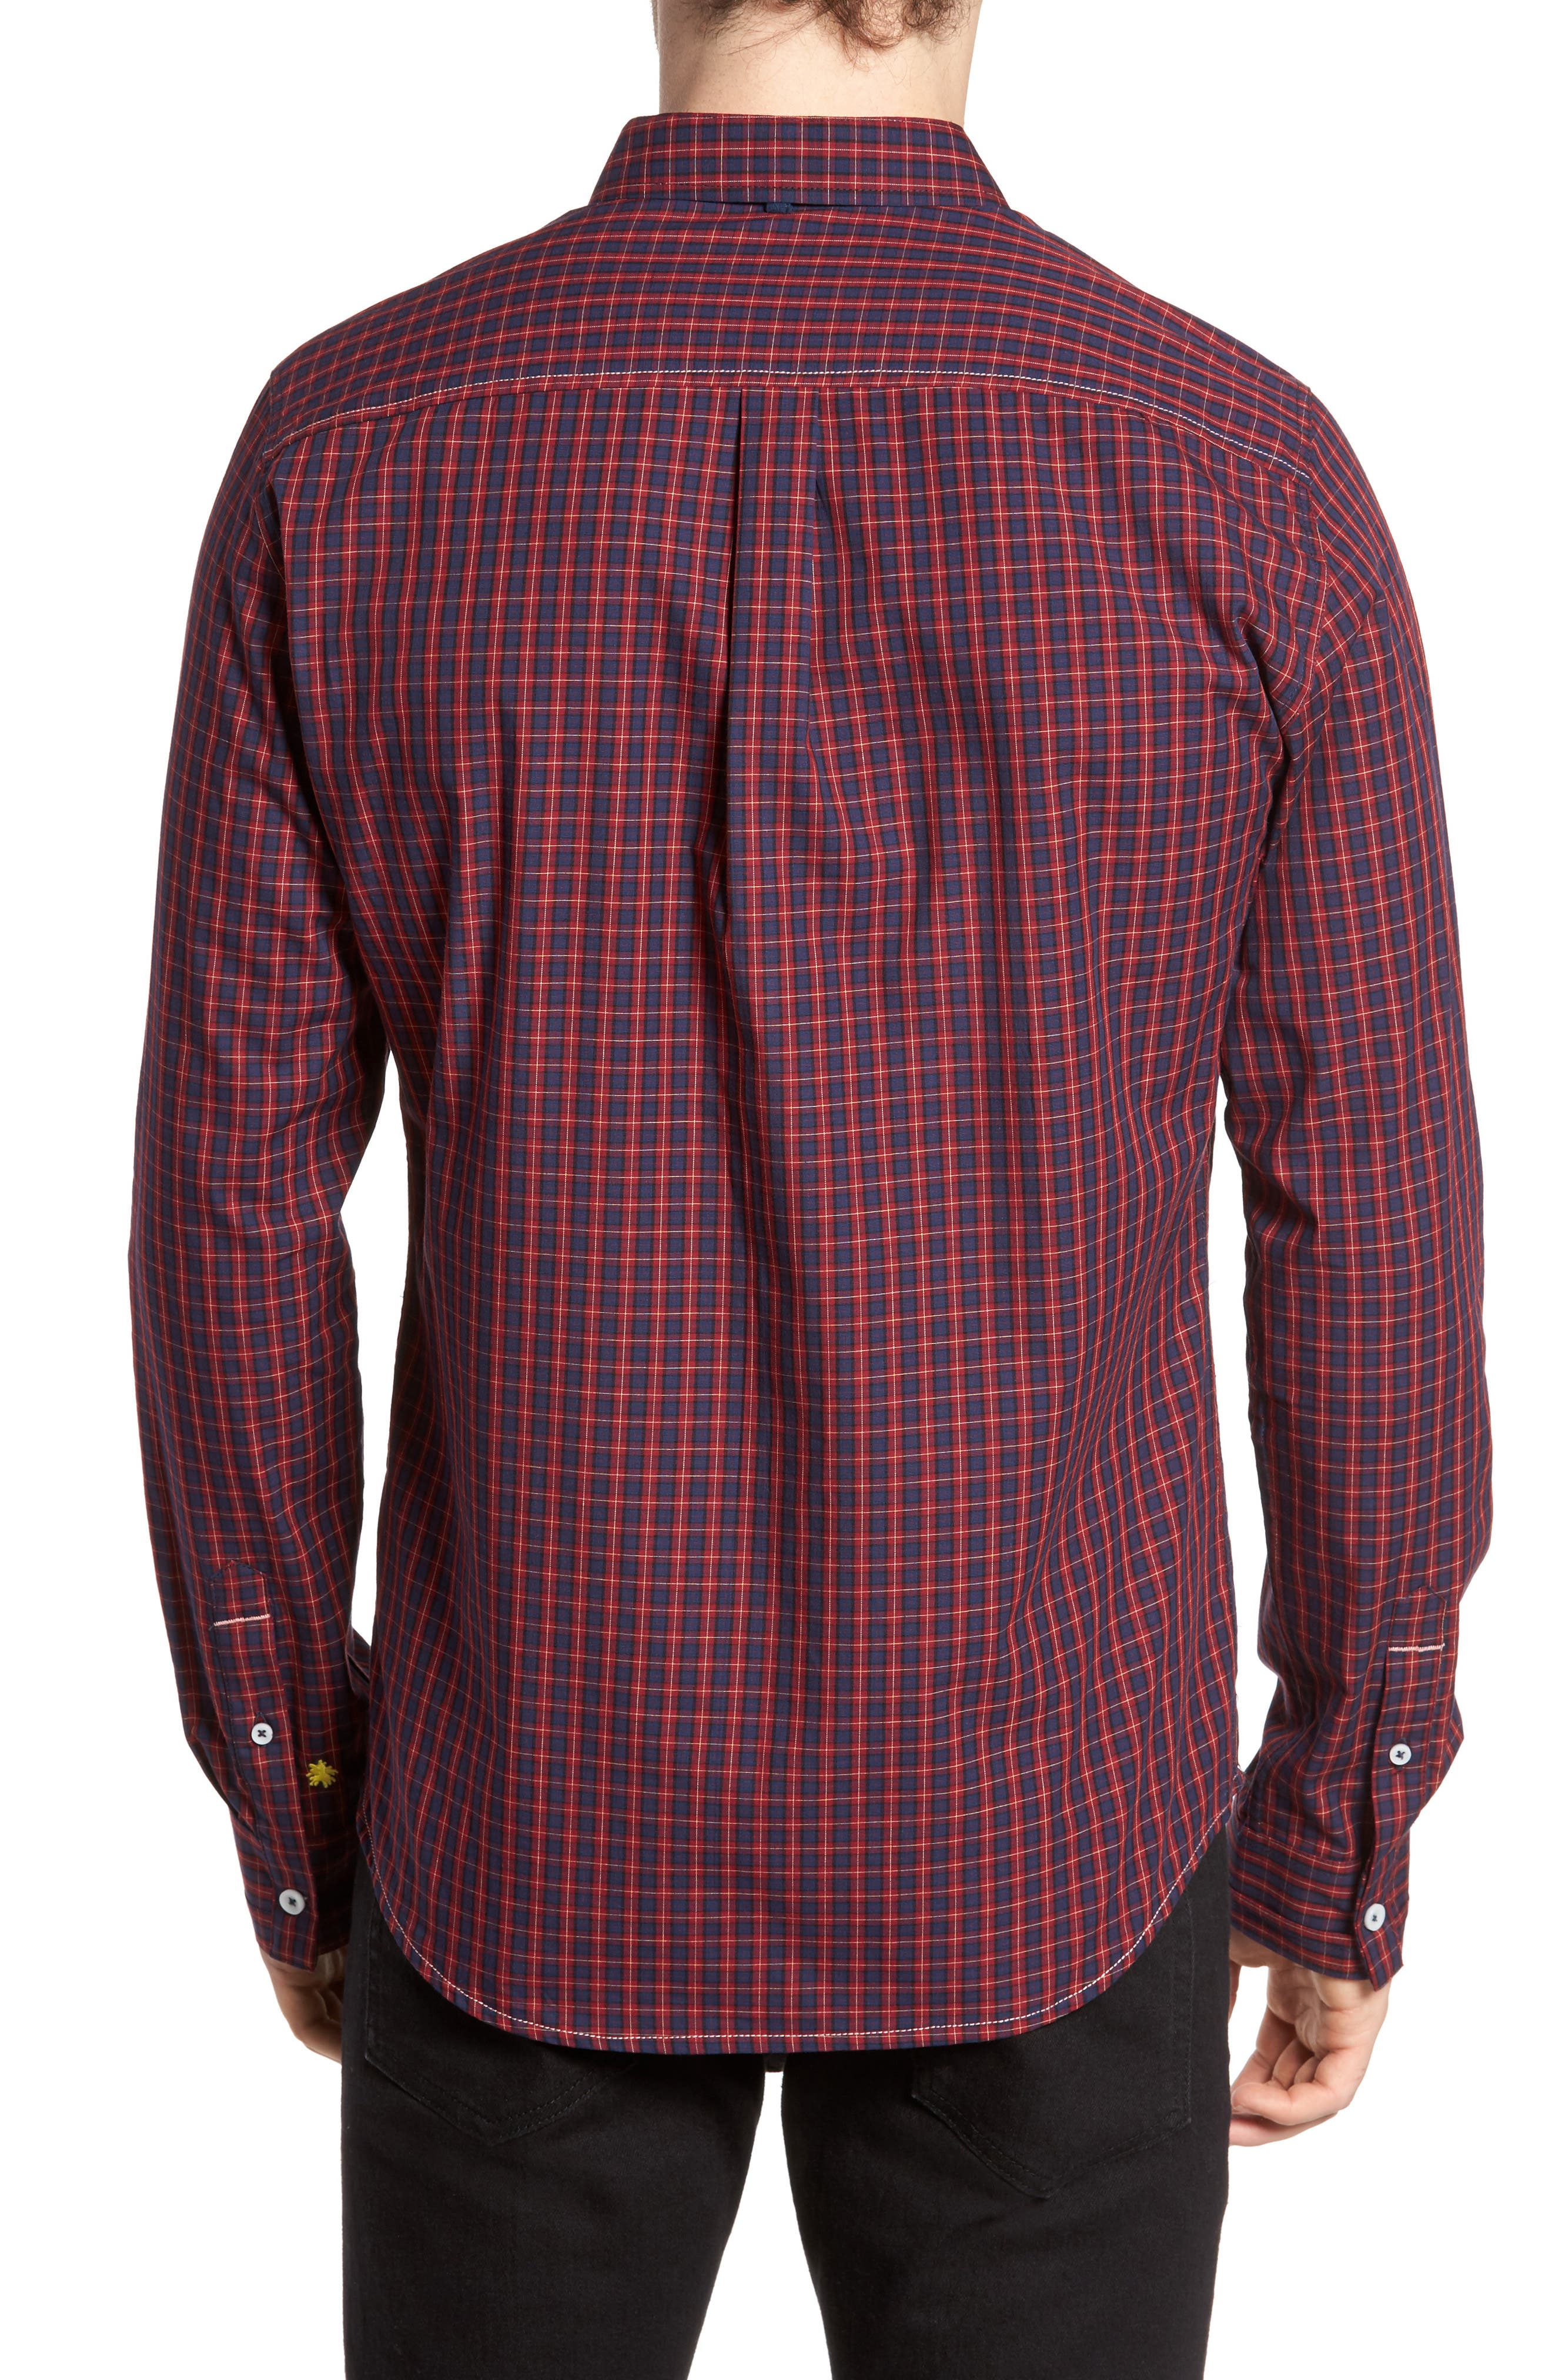 Alternate Image 2  - Descendant of Thieves Tinto Plaid Woven Shirt